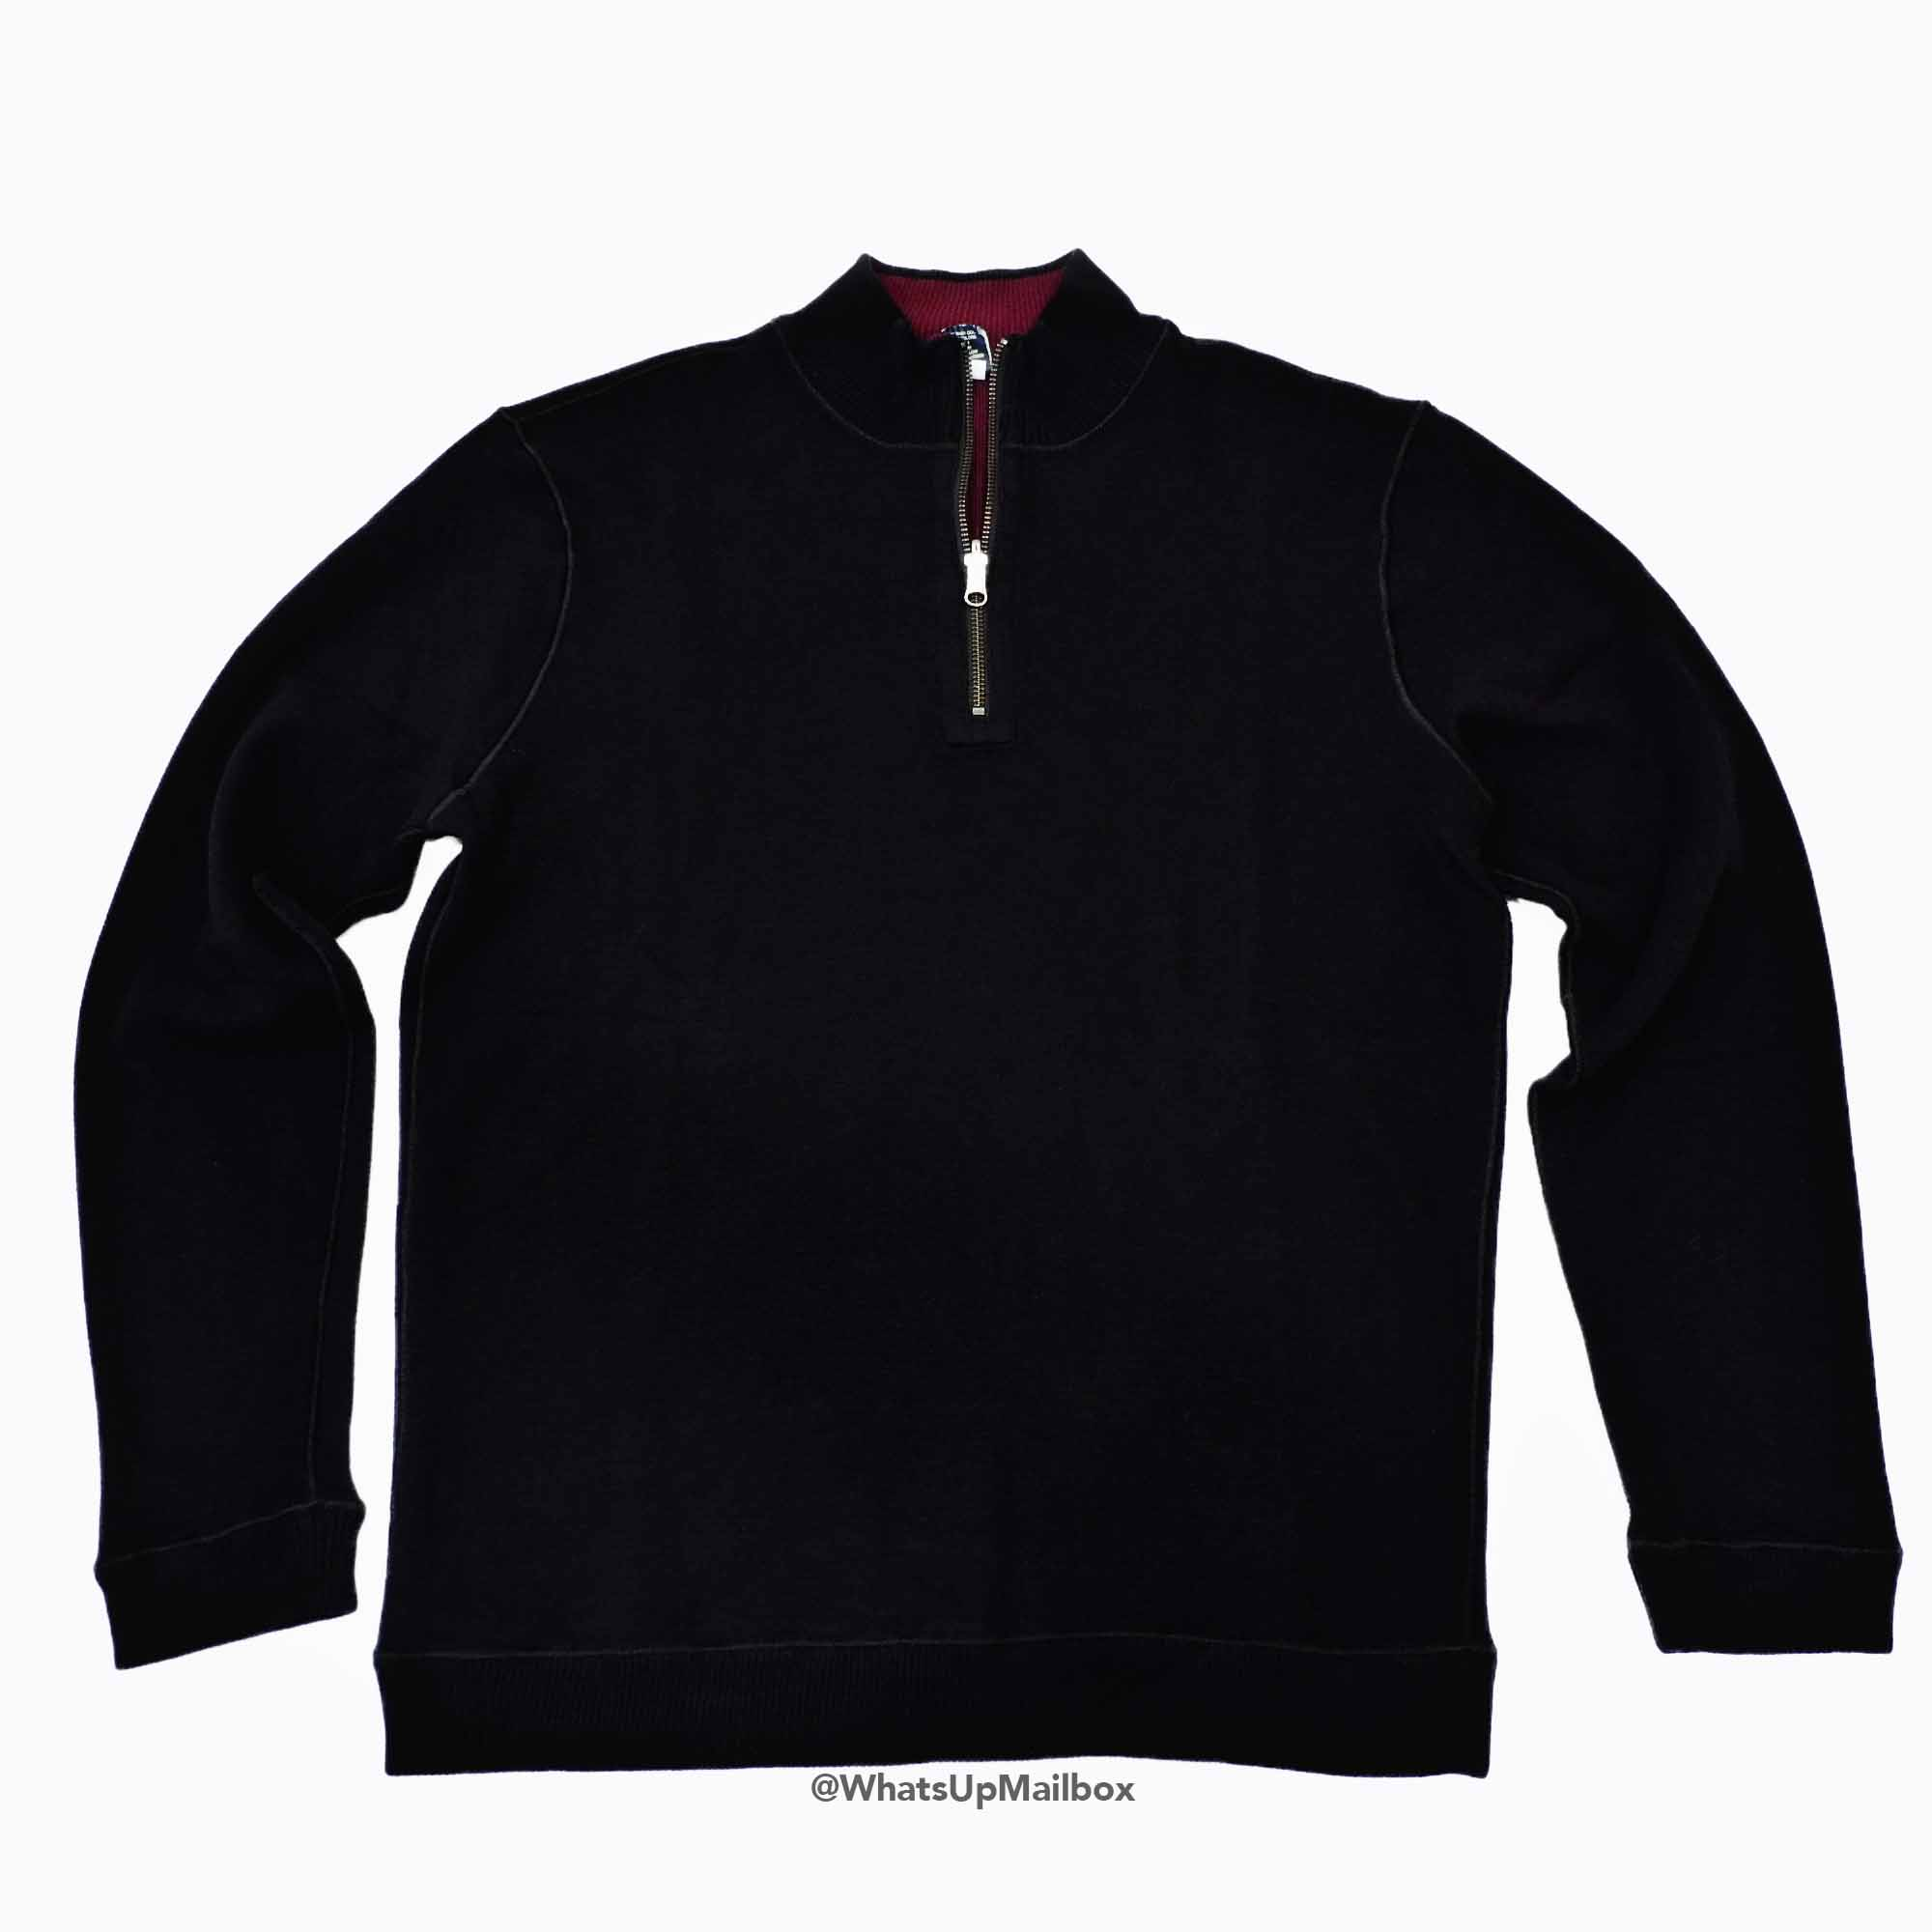 Trendy Butler - Tailor Vintage Black Sweater